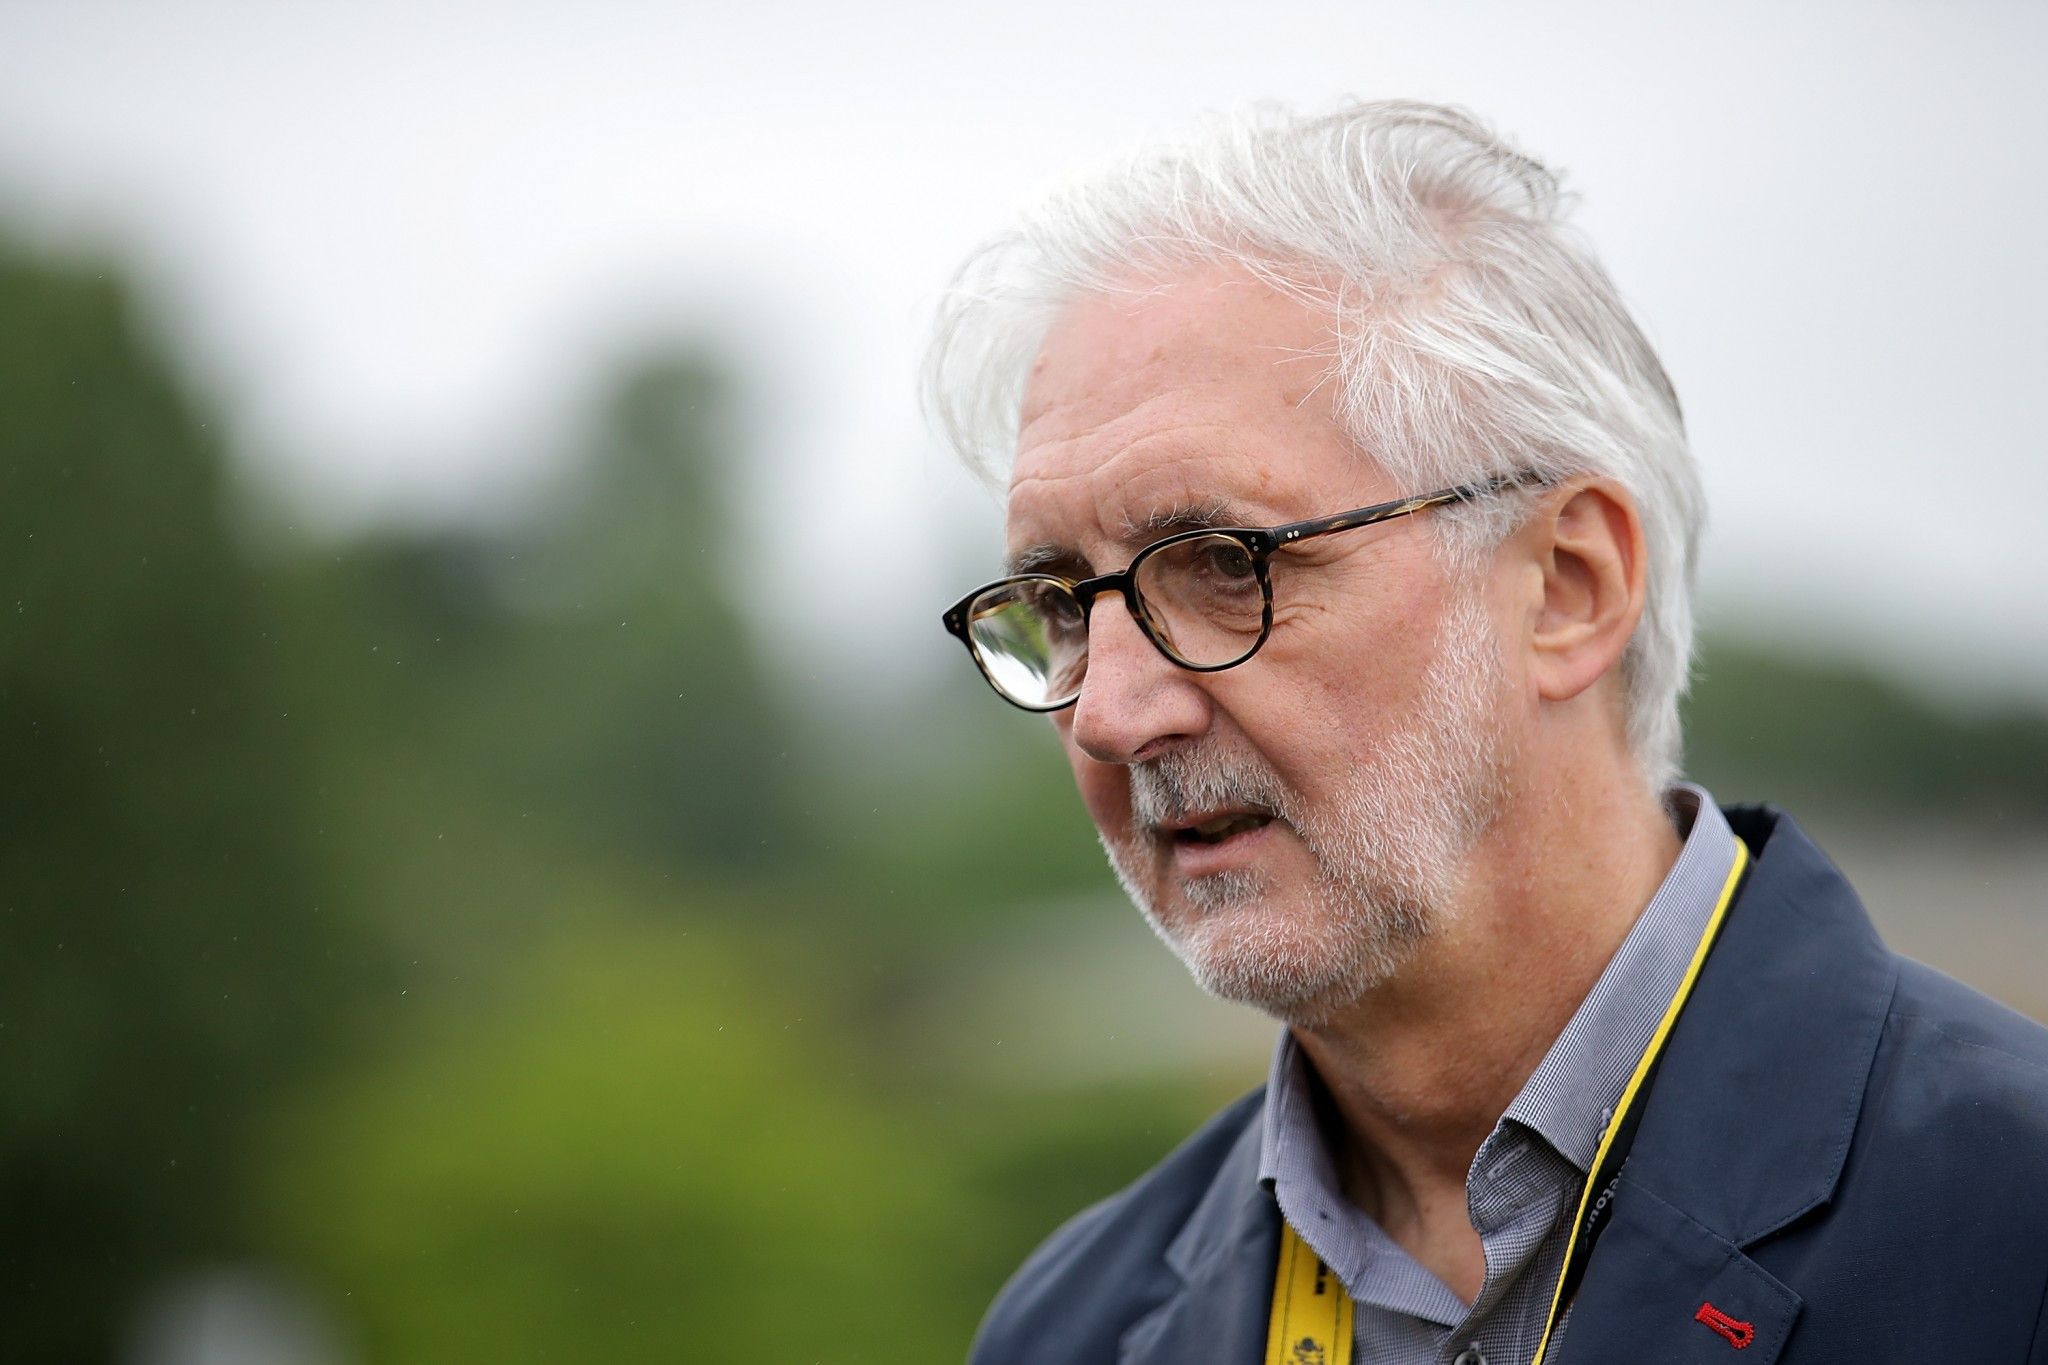 Cookson hits back at election rival Lappartient over women's cycling comments